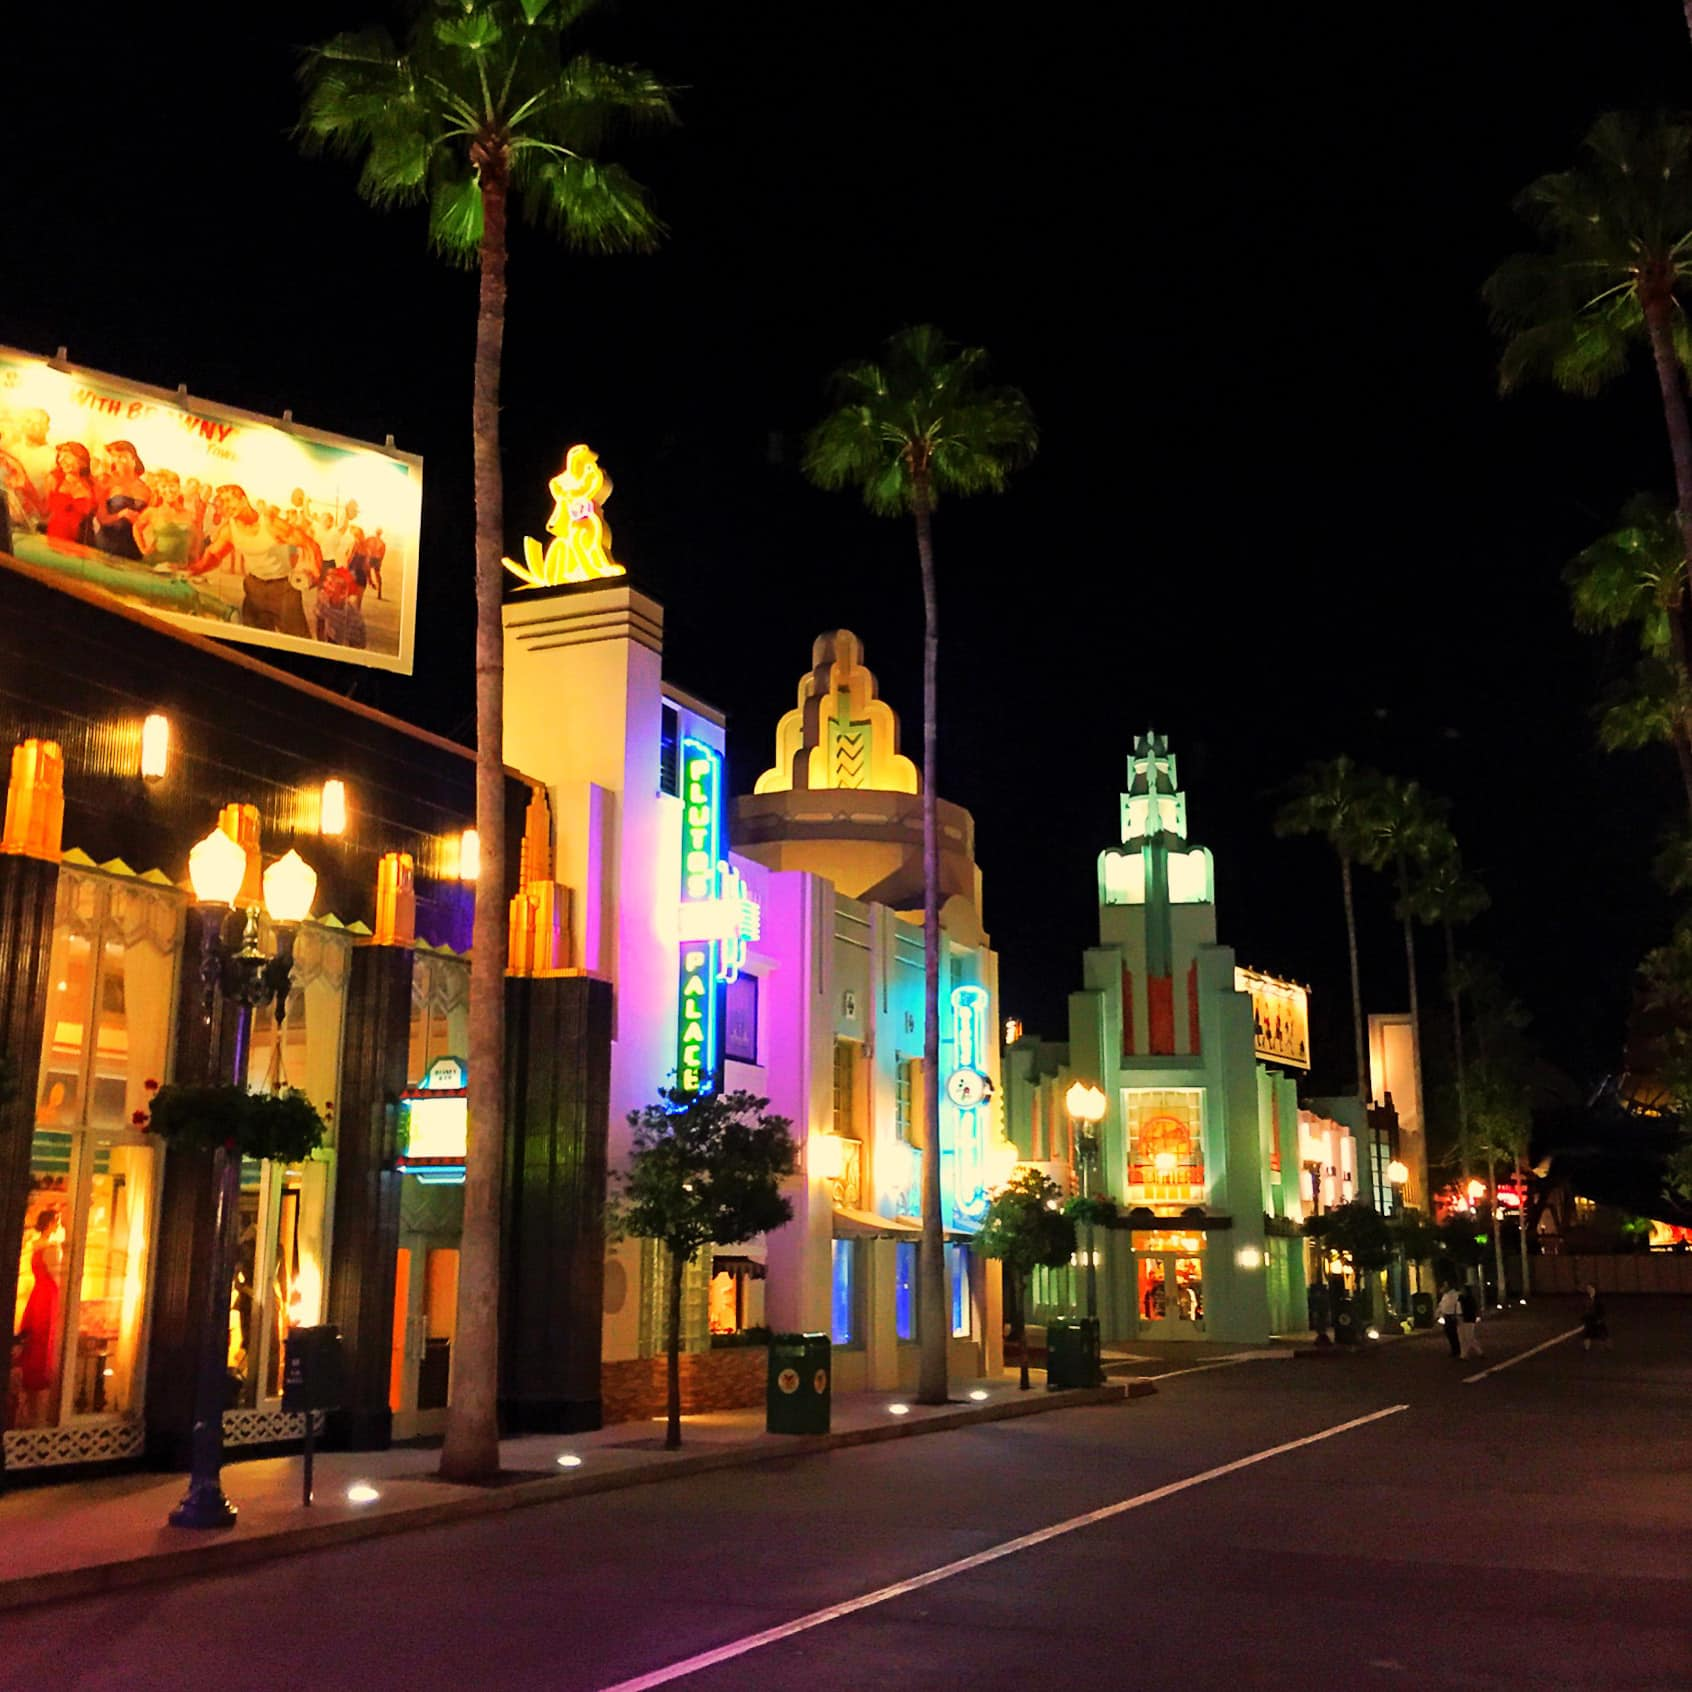 Don't miss these Disney World rides after dark. #mousechat #disneypodcast #disneyvacation